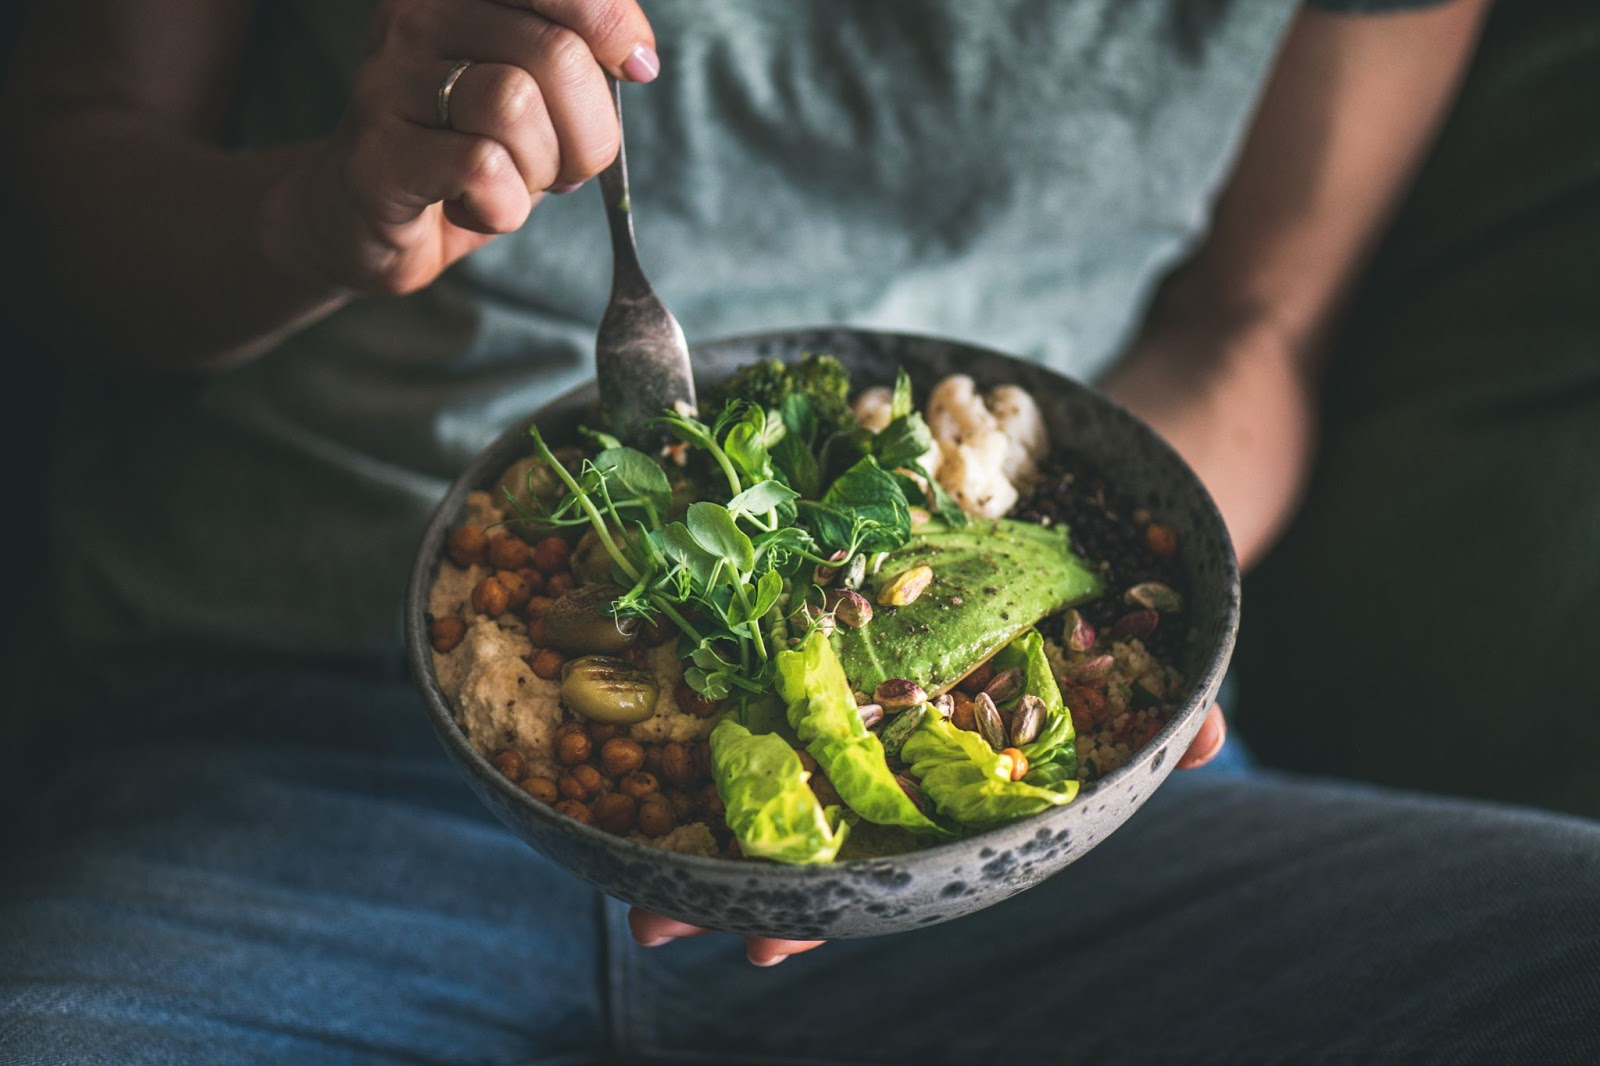 A person puts a fork in a bowl of healthy food